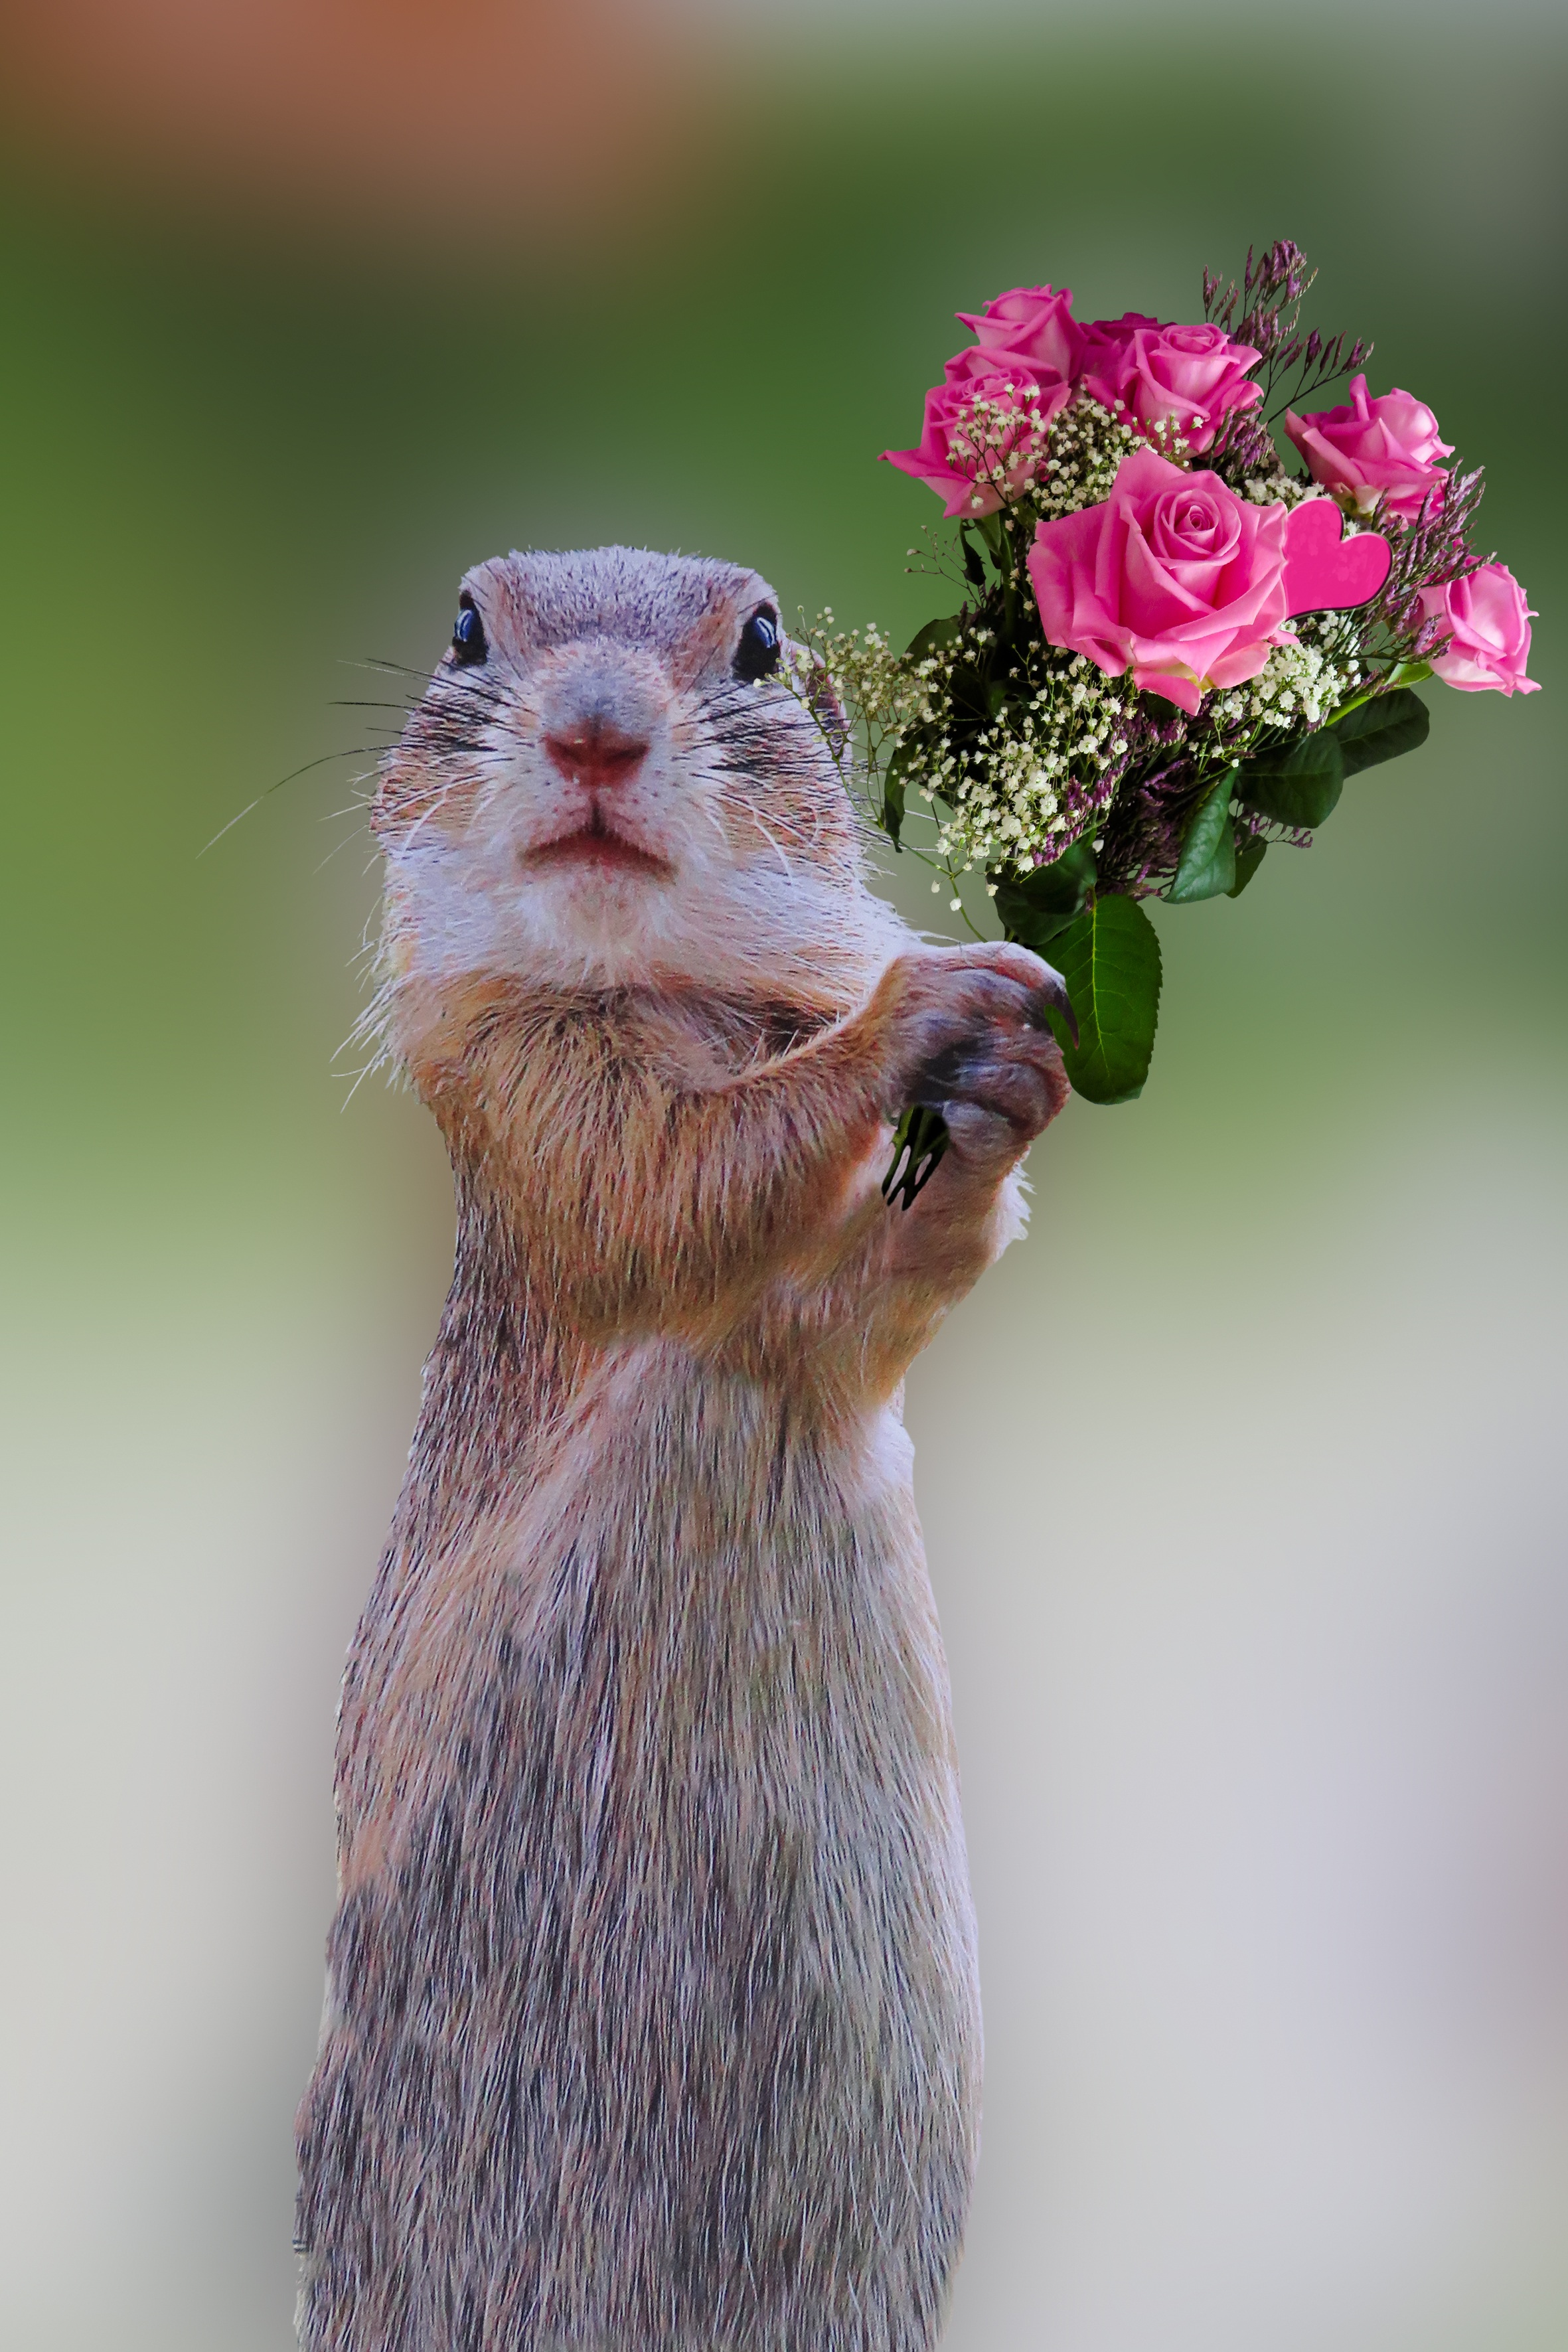 Holding Roses, Mouse, Nature, Wild, Hold, HQ Photo